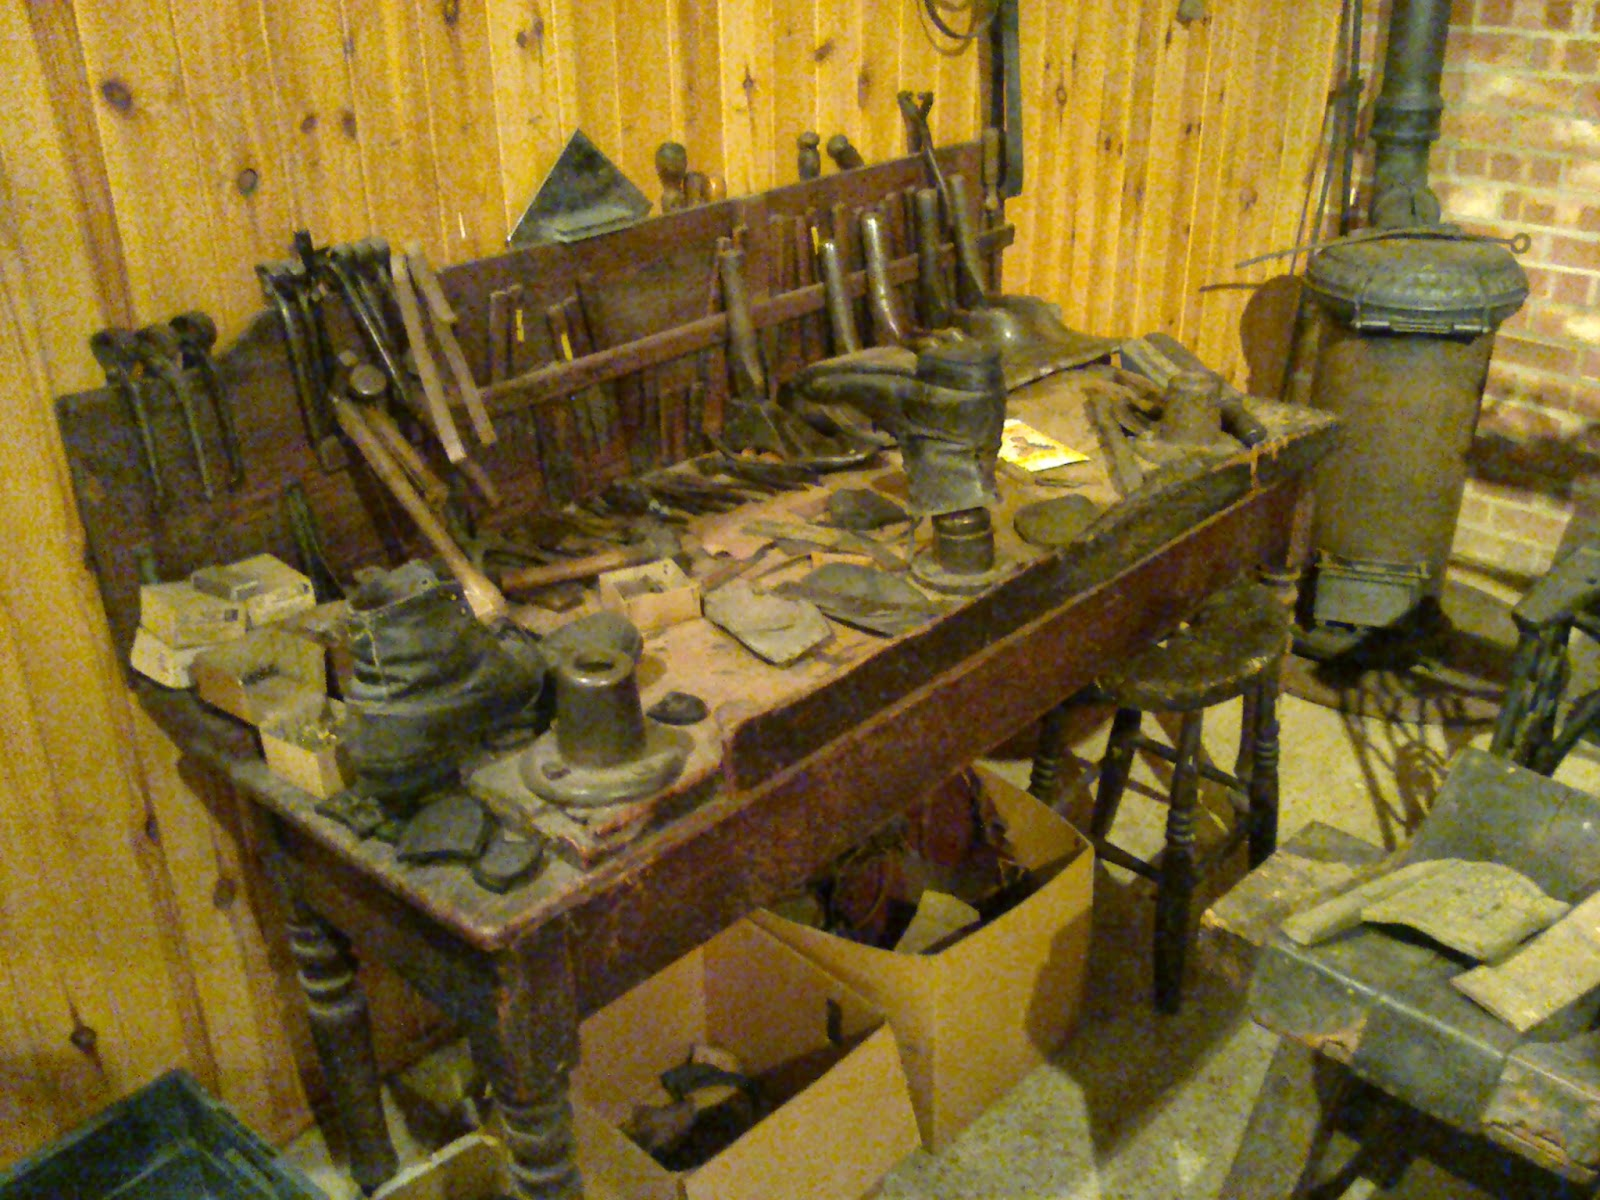 Shoe menders work bench